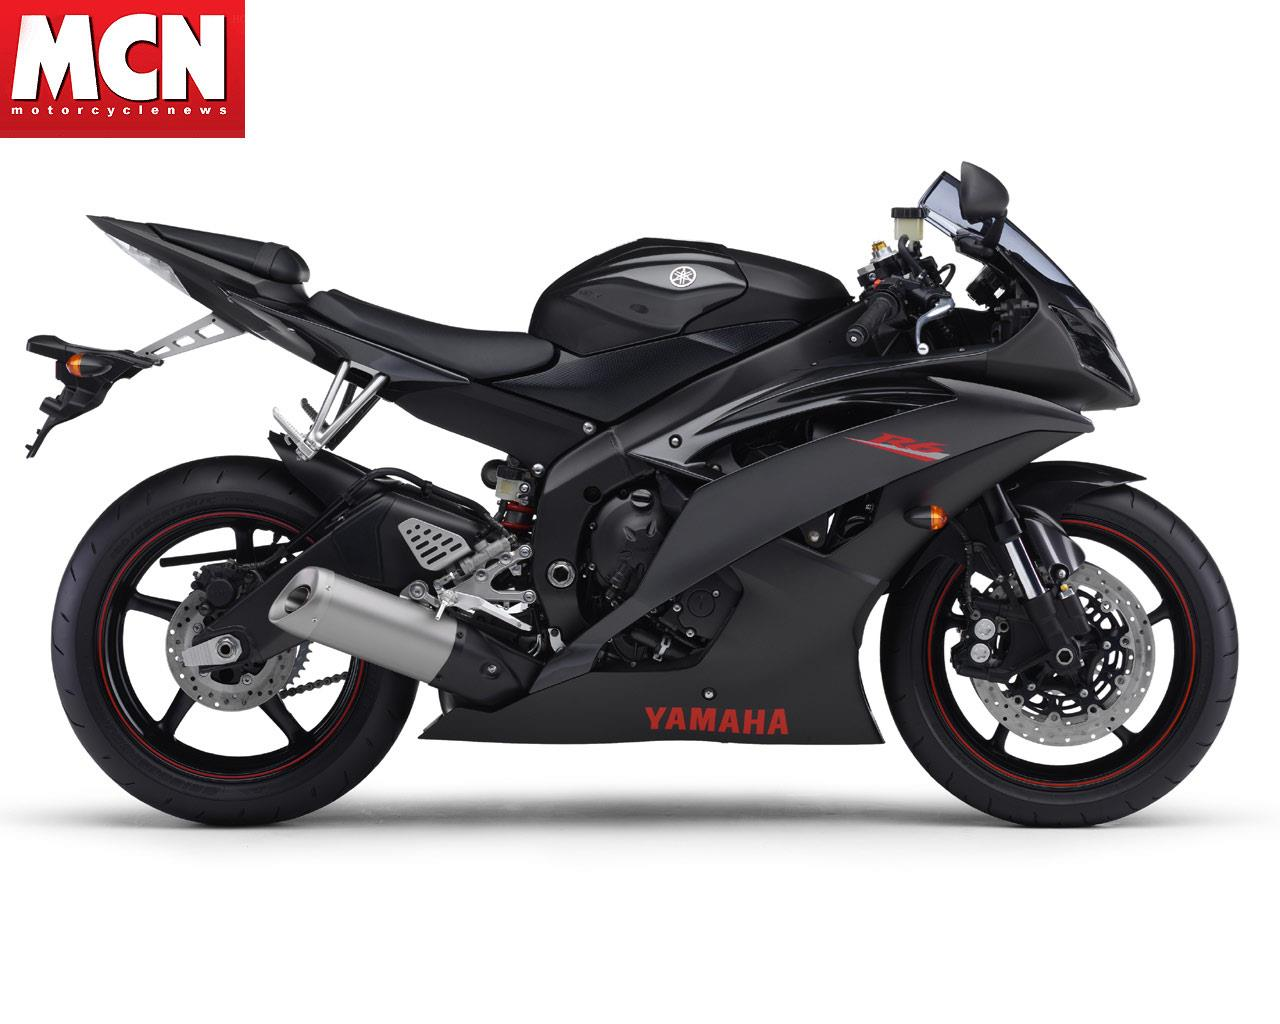 The 2008 Yamaha R6 motorcycle revealed | MCN